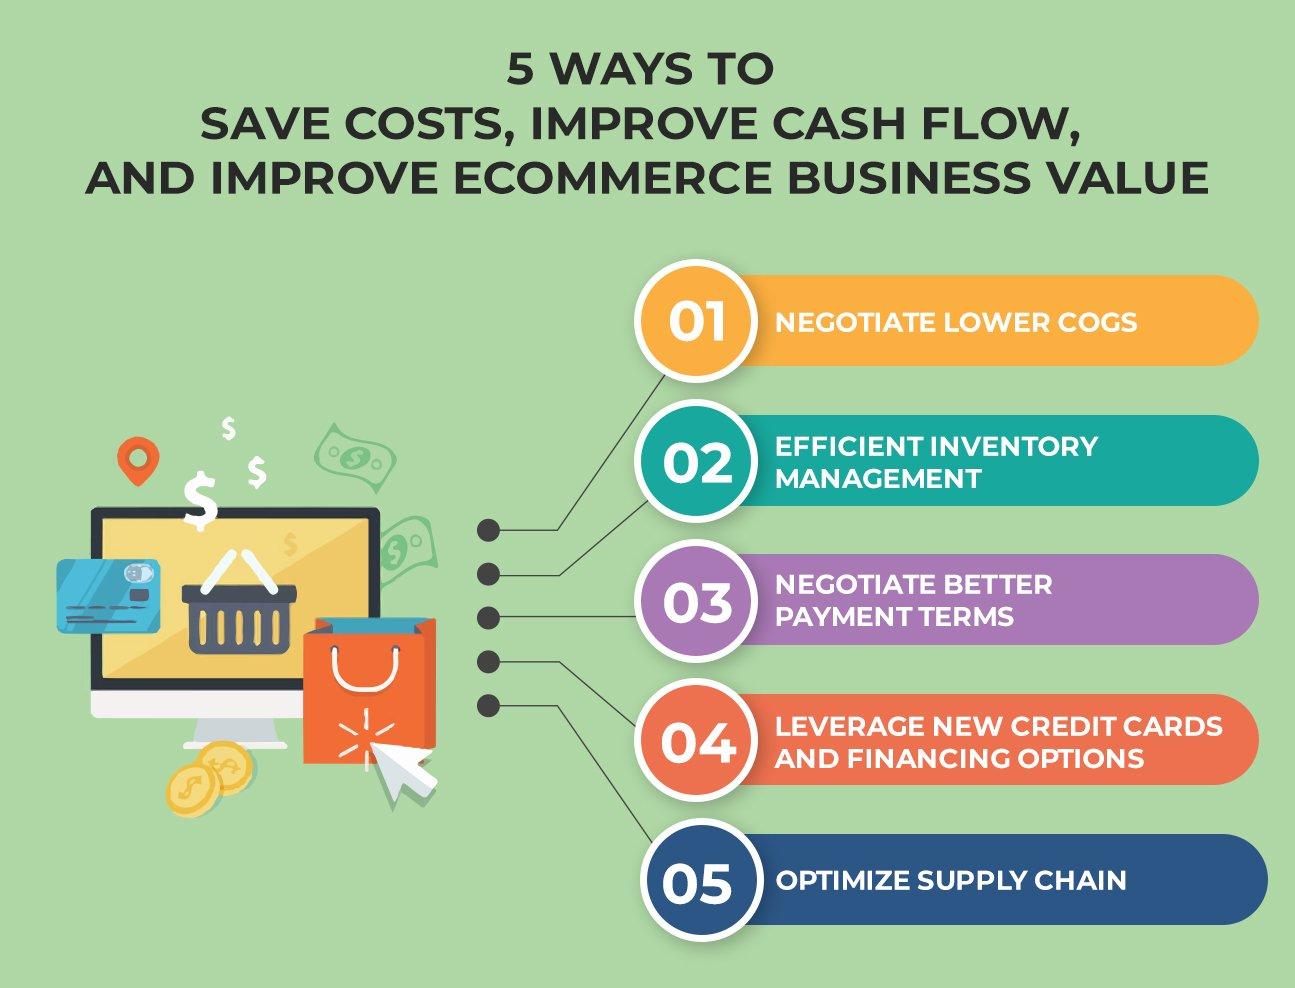 5 Ways to Save Costs, Improve Cash Flow, and Improve Your ECommerce Business Value info 2